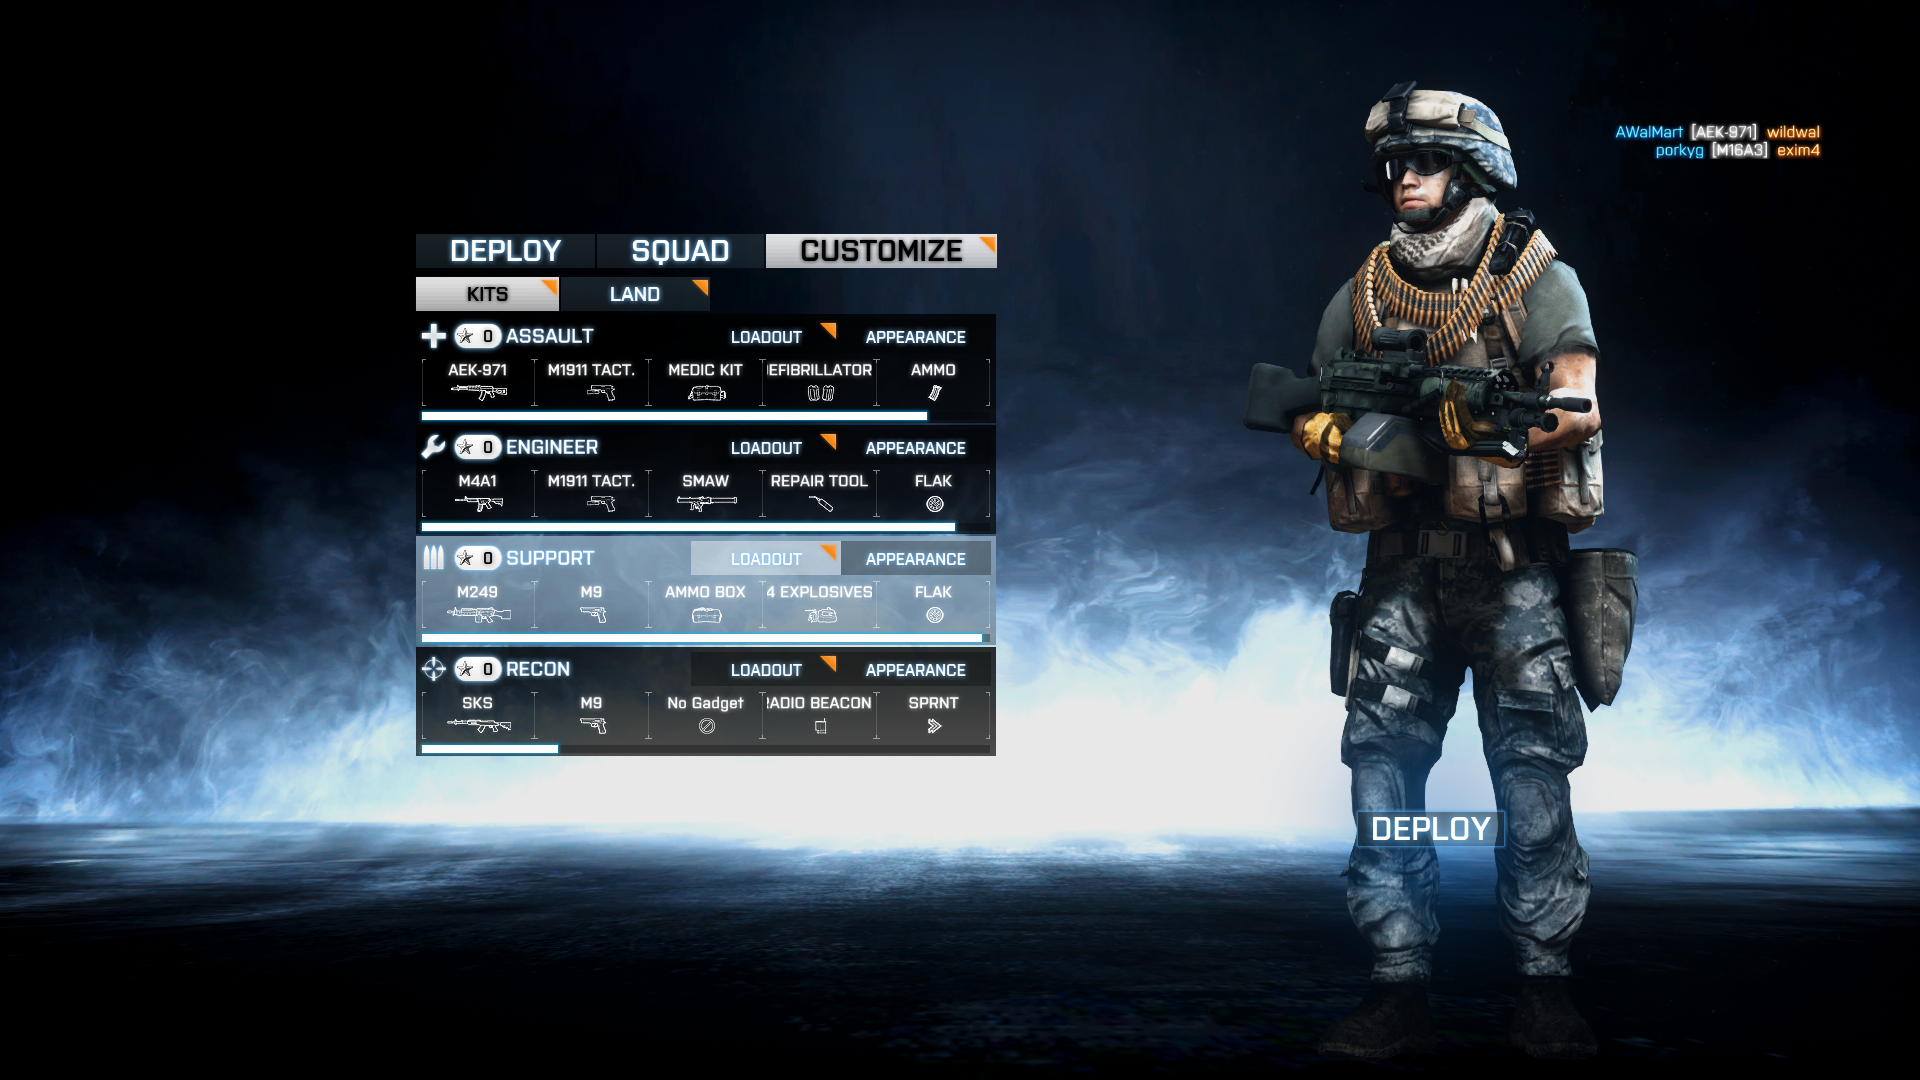 Battlefield 3 Windows Picking a class.  You can see your soldier, his gear, and camouflage.